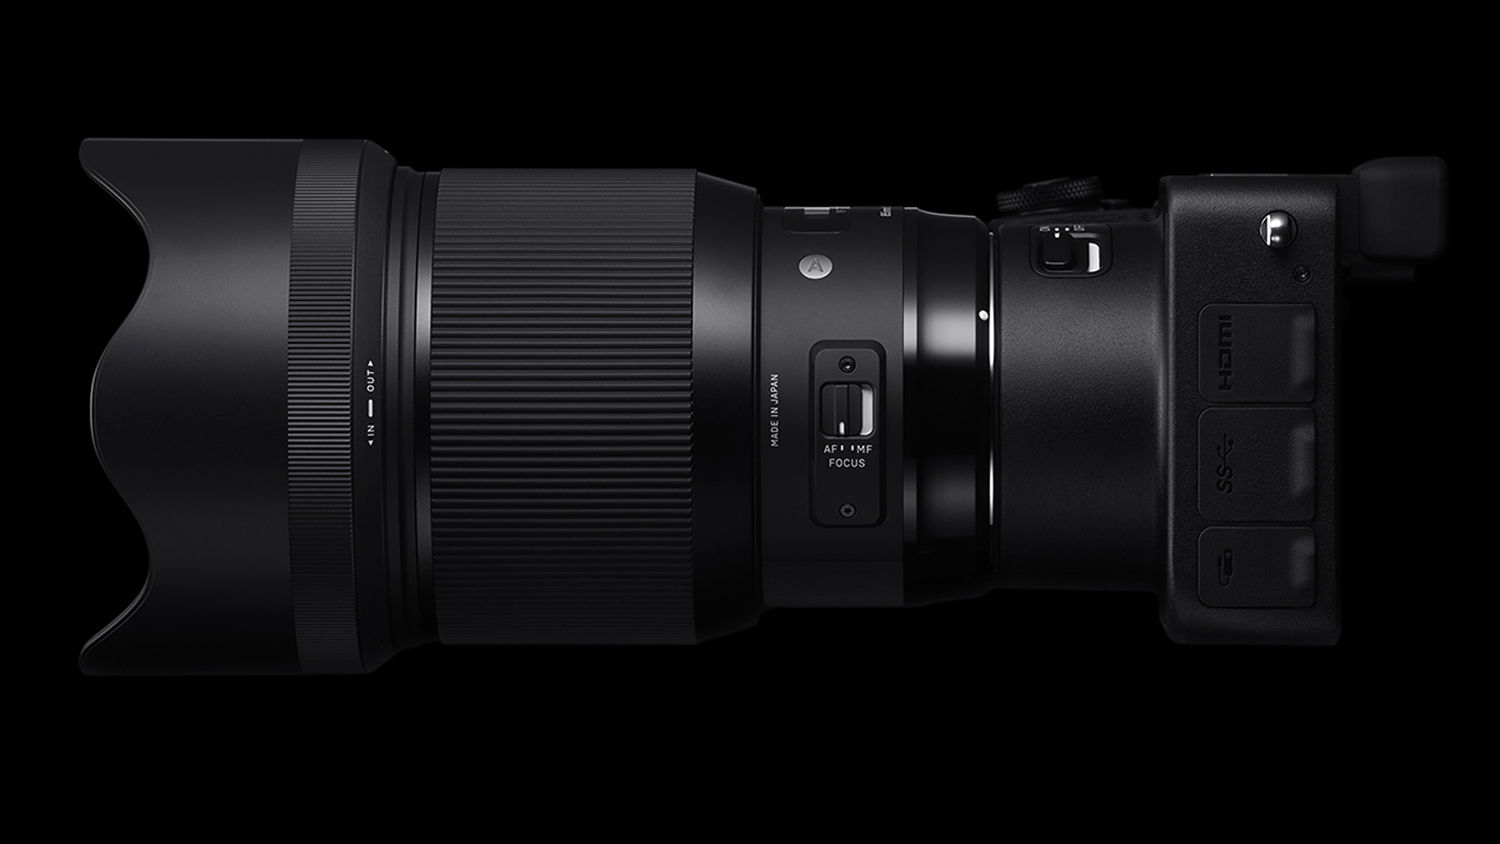 Объектив Обзор Sigma 85mm f/1.4 Art на камере Sigma sd Quattro